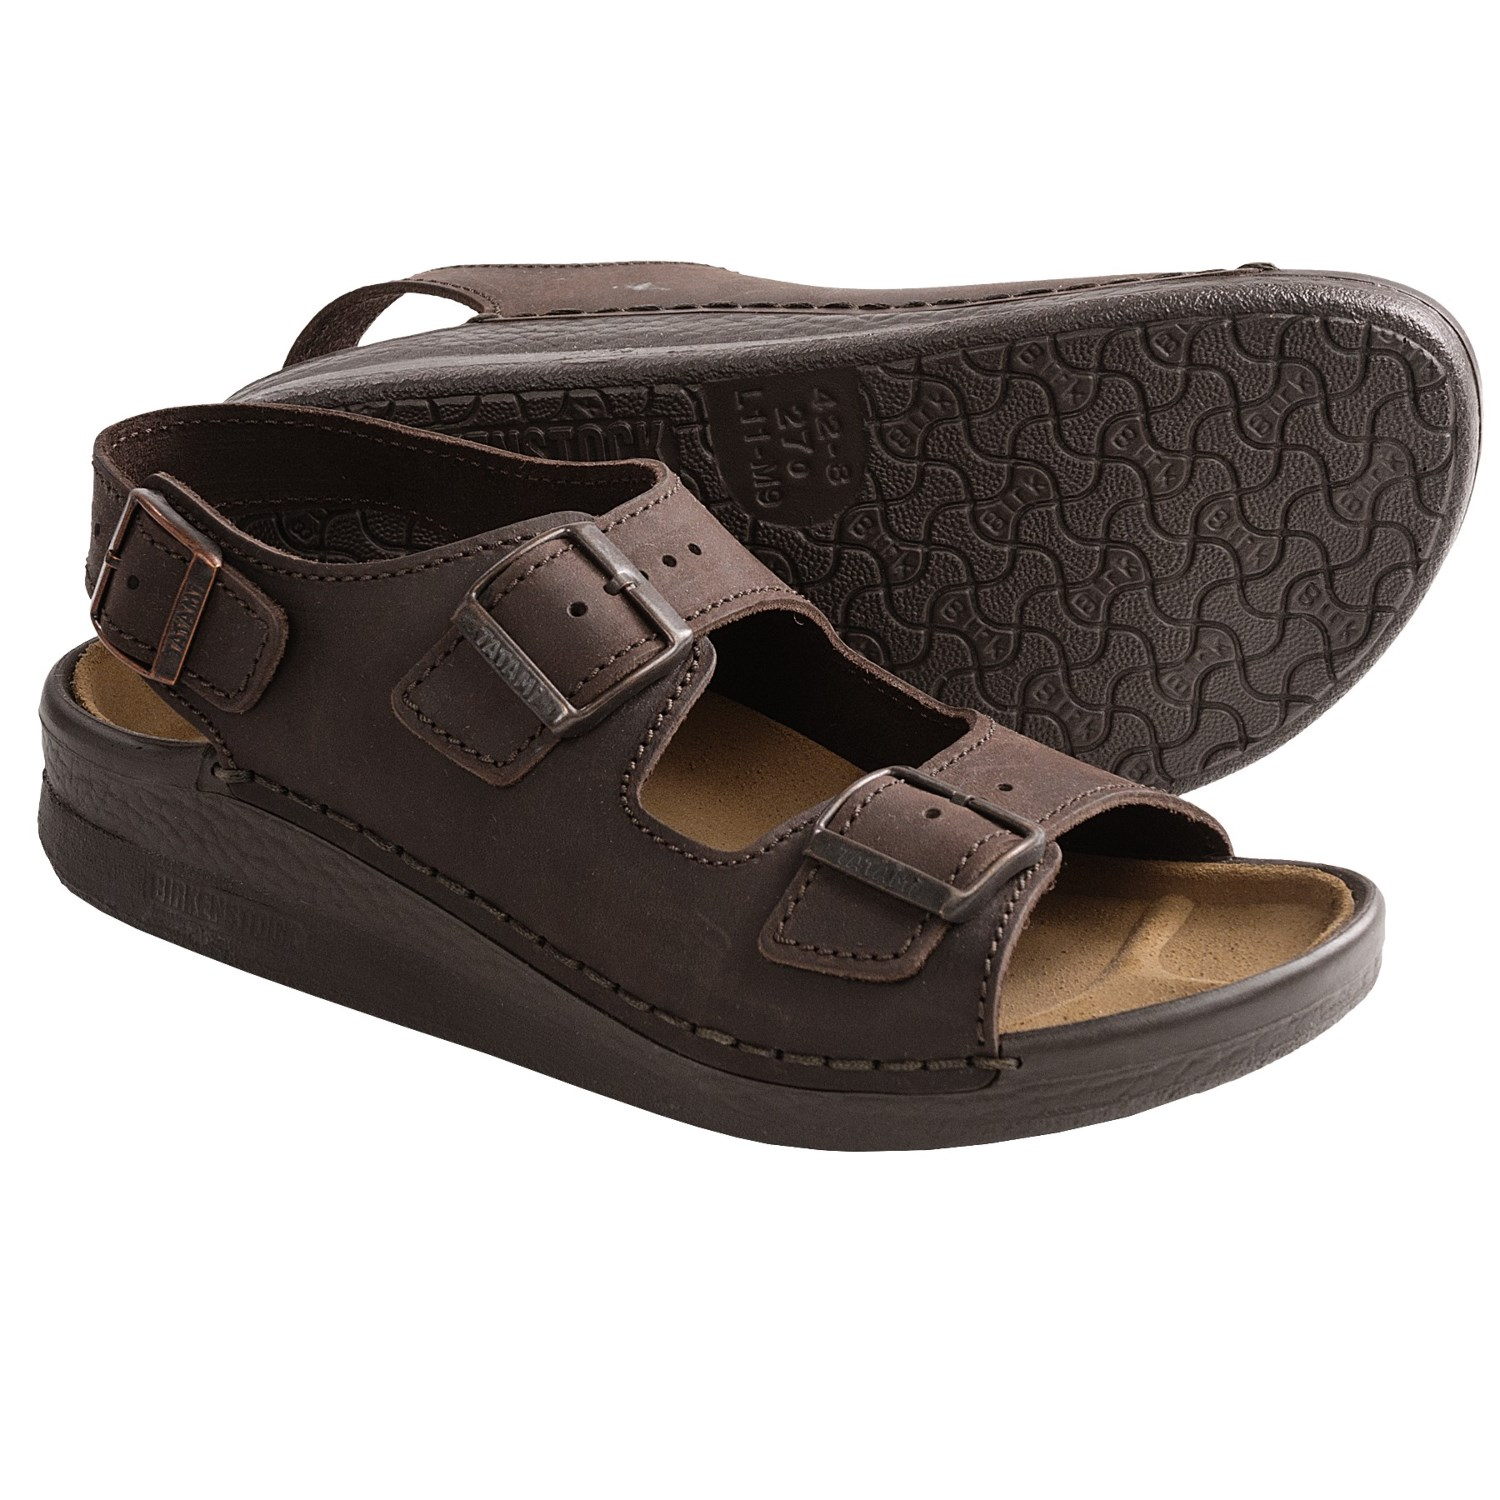 Shoes 20Tatami Stem And Caucus Pictures Education Ideas On 4Rq35AcjL